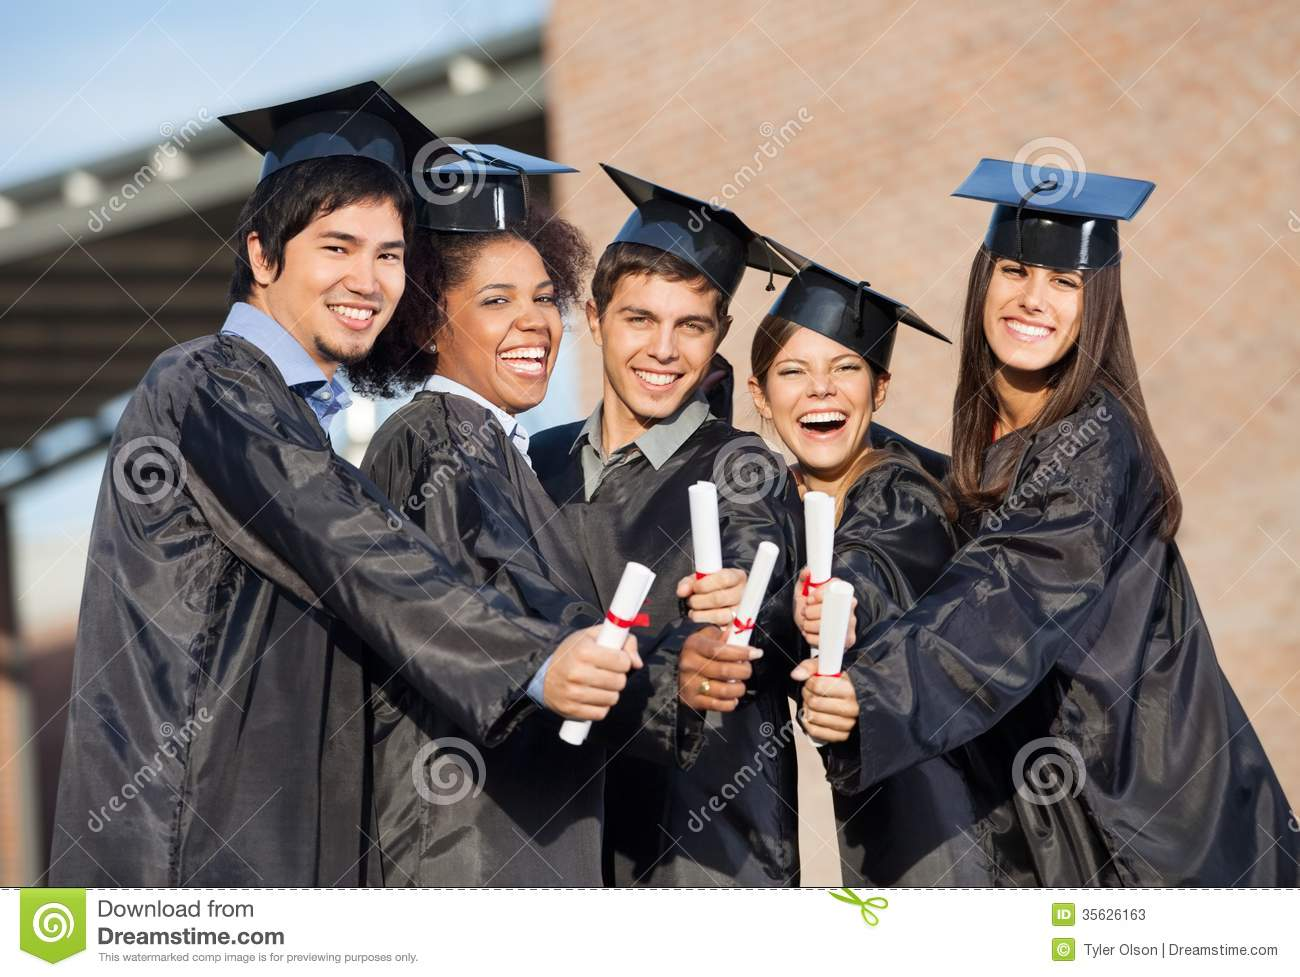 students in graduation gowns showing diplomas on stock clip art graduation hats in a line clip art graduation hats red